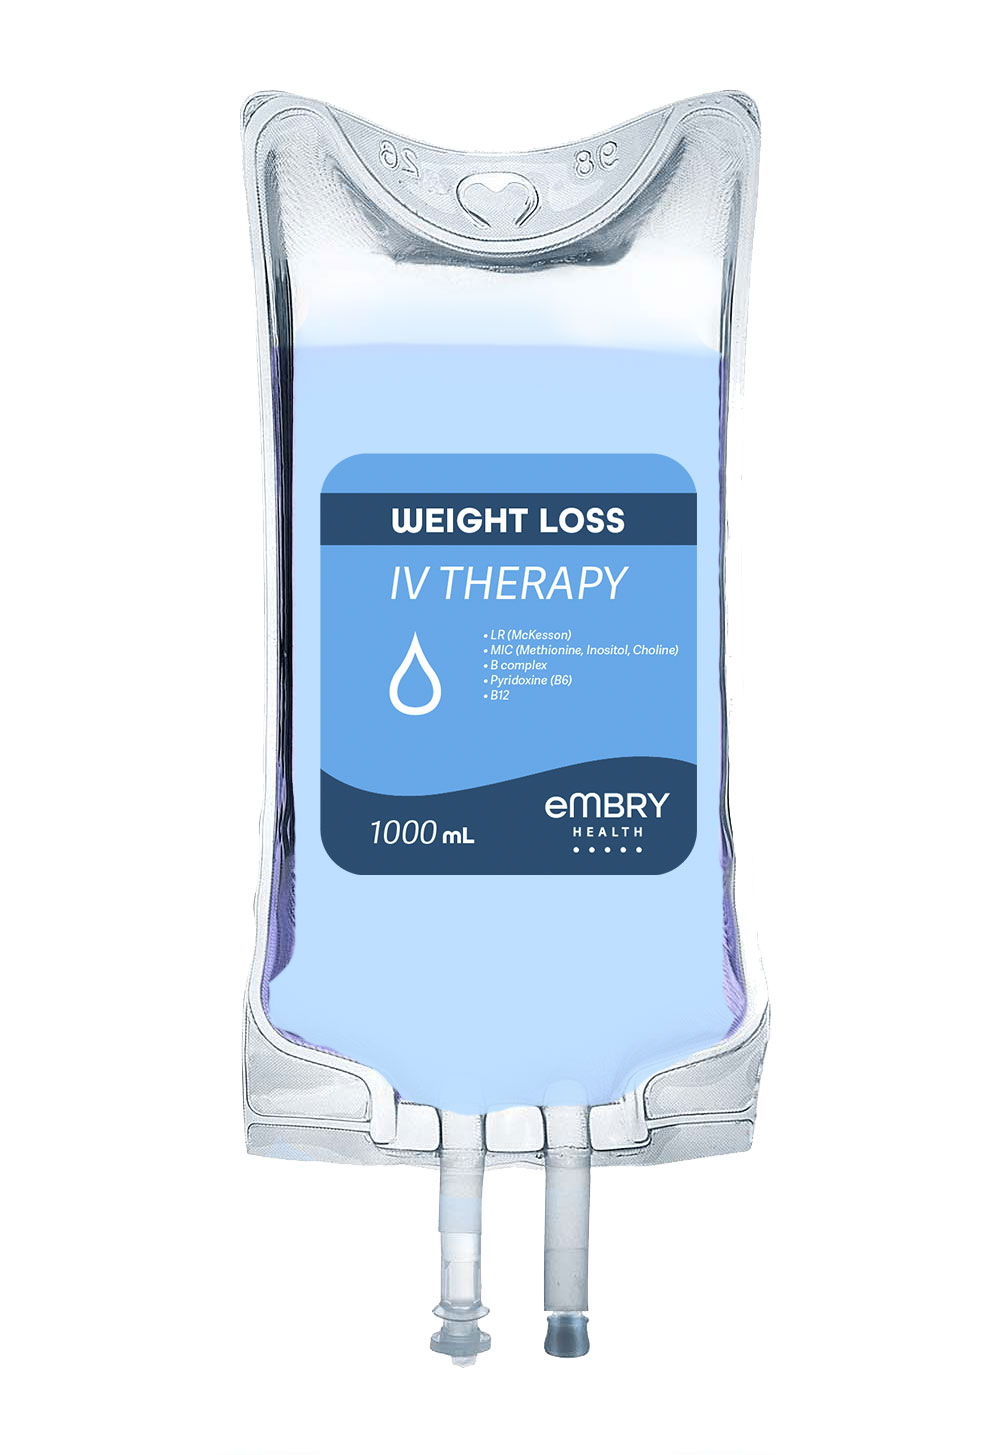 Includes a blend of IV fluids and electrolytes formulated for quick hydration and weight loss leaving you feeling revitalized and refreshed. $200